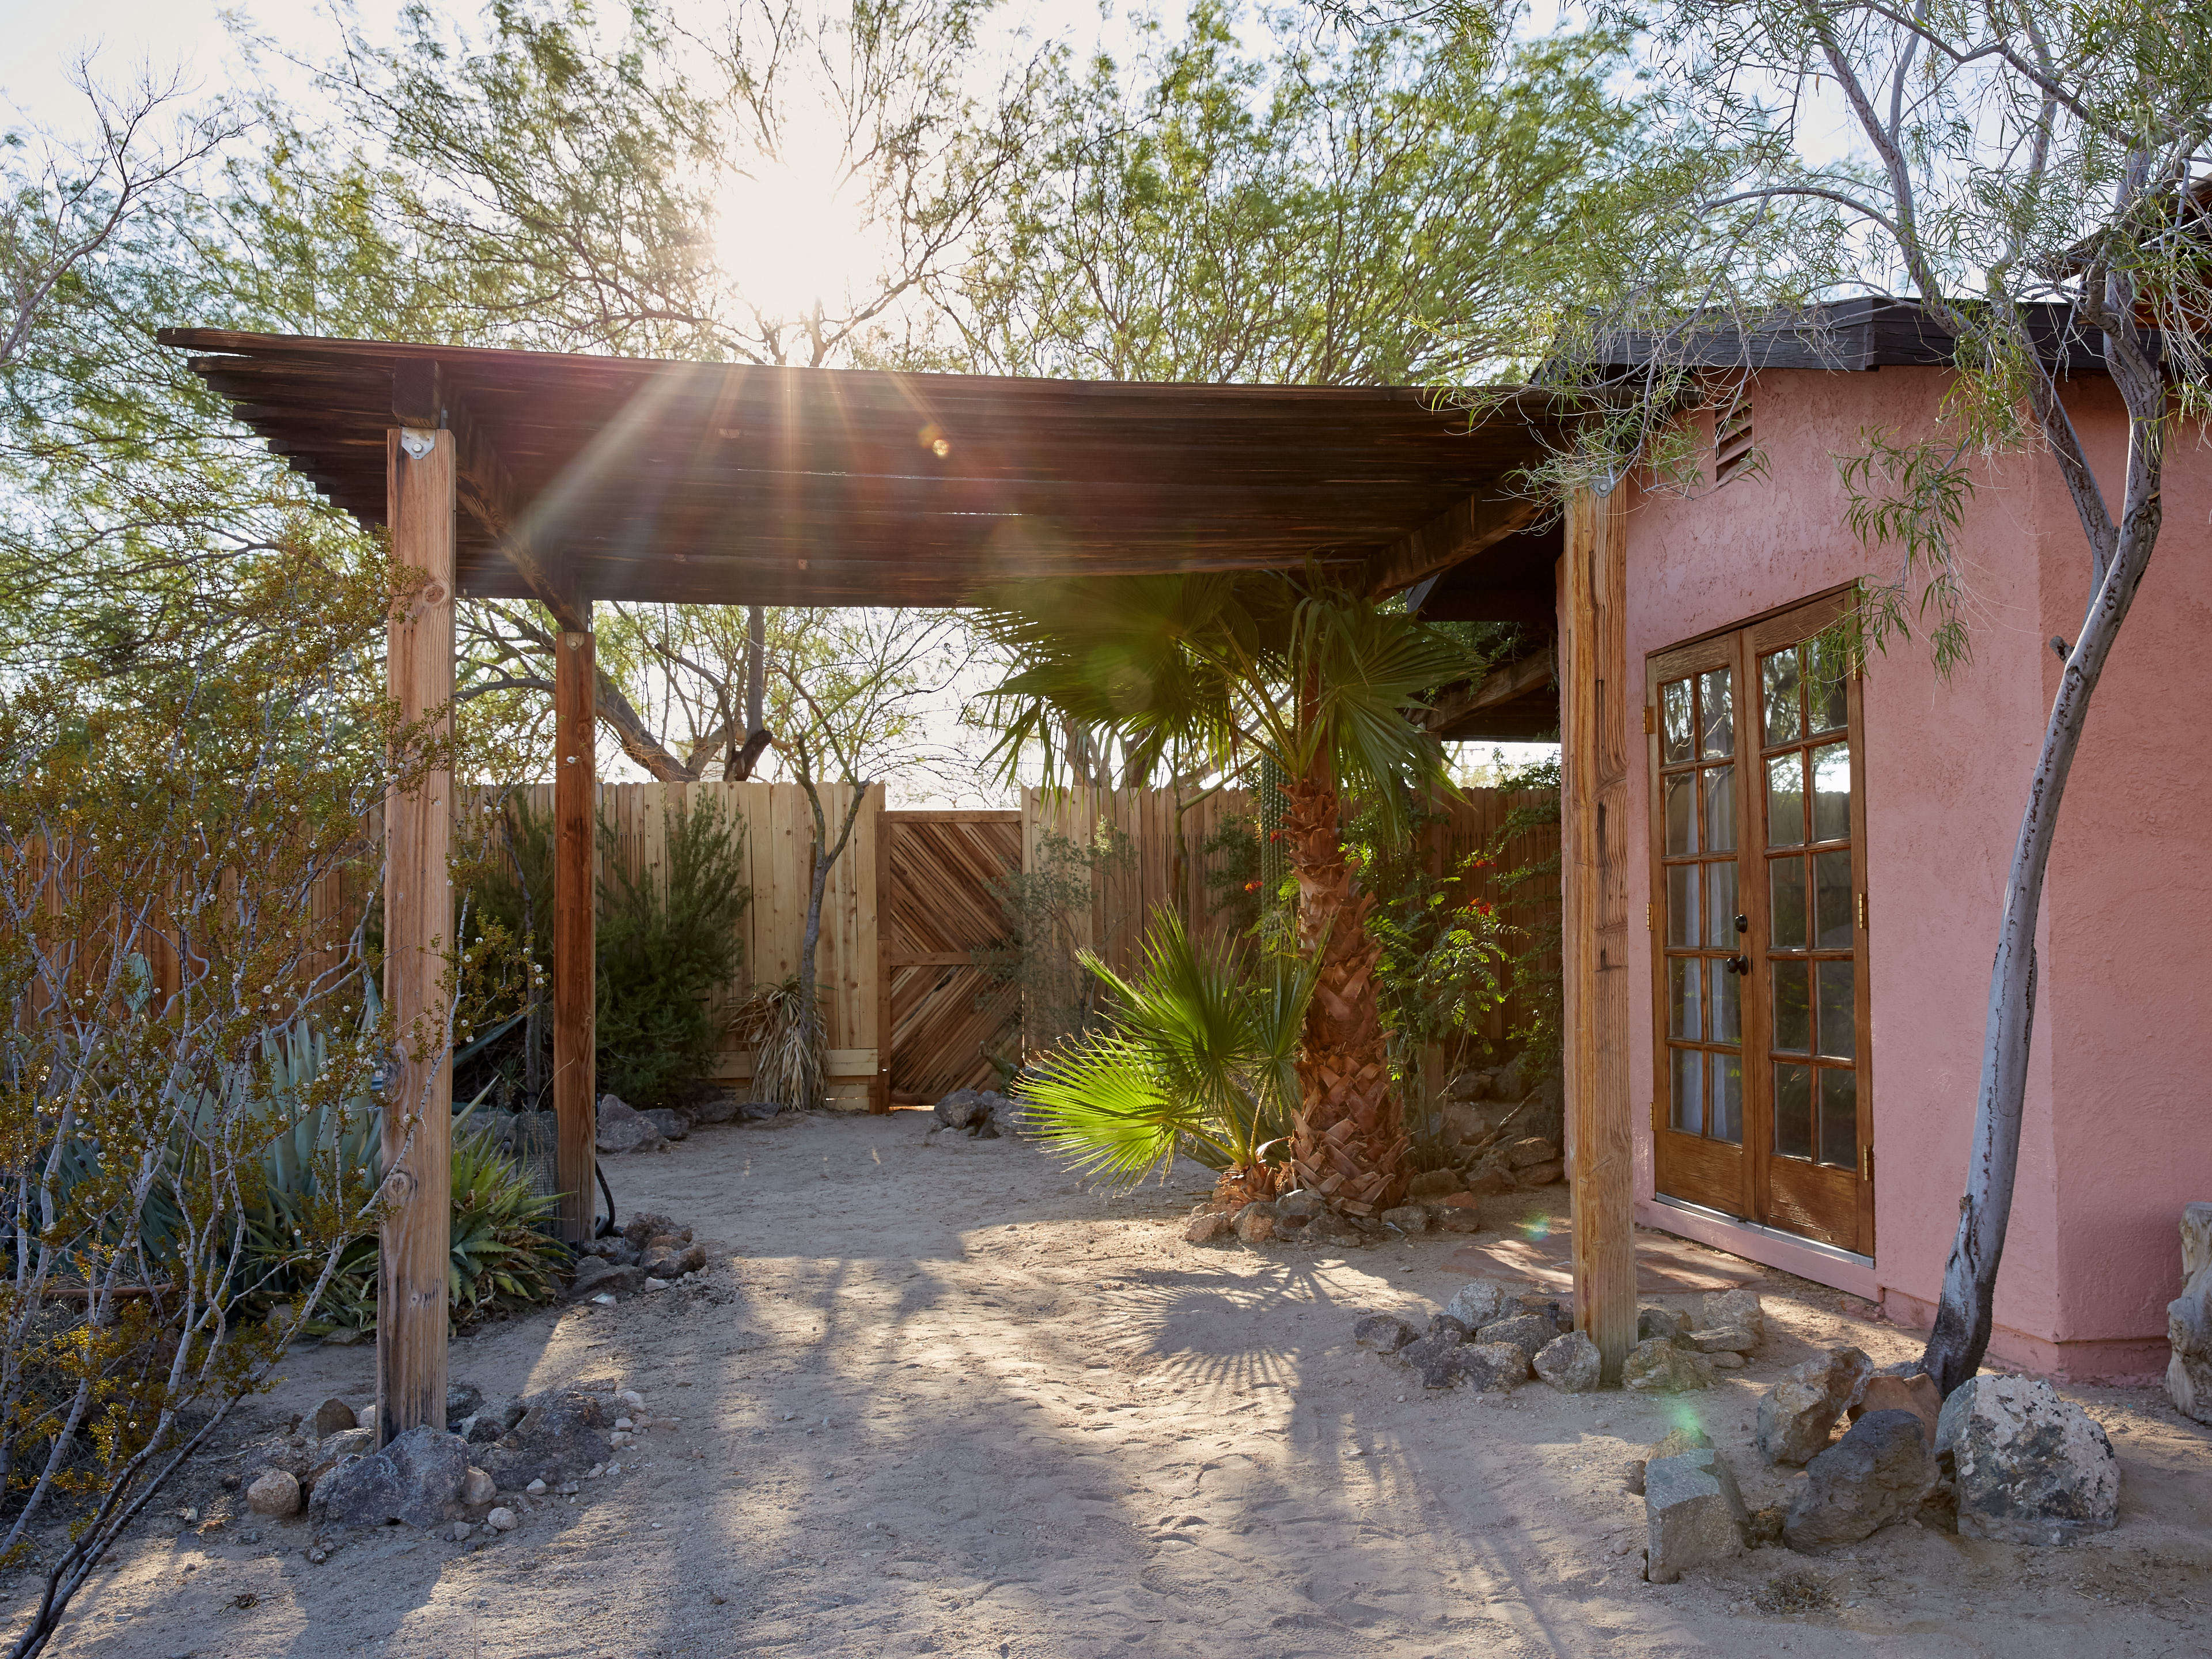 The Joshua Tree Casita: A Stylish DIY Remodel, Budget Edition ...